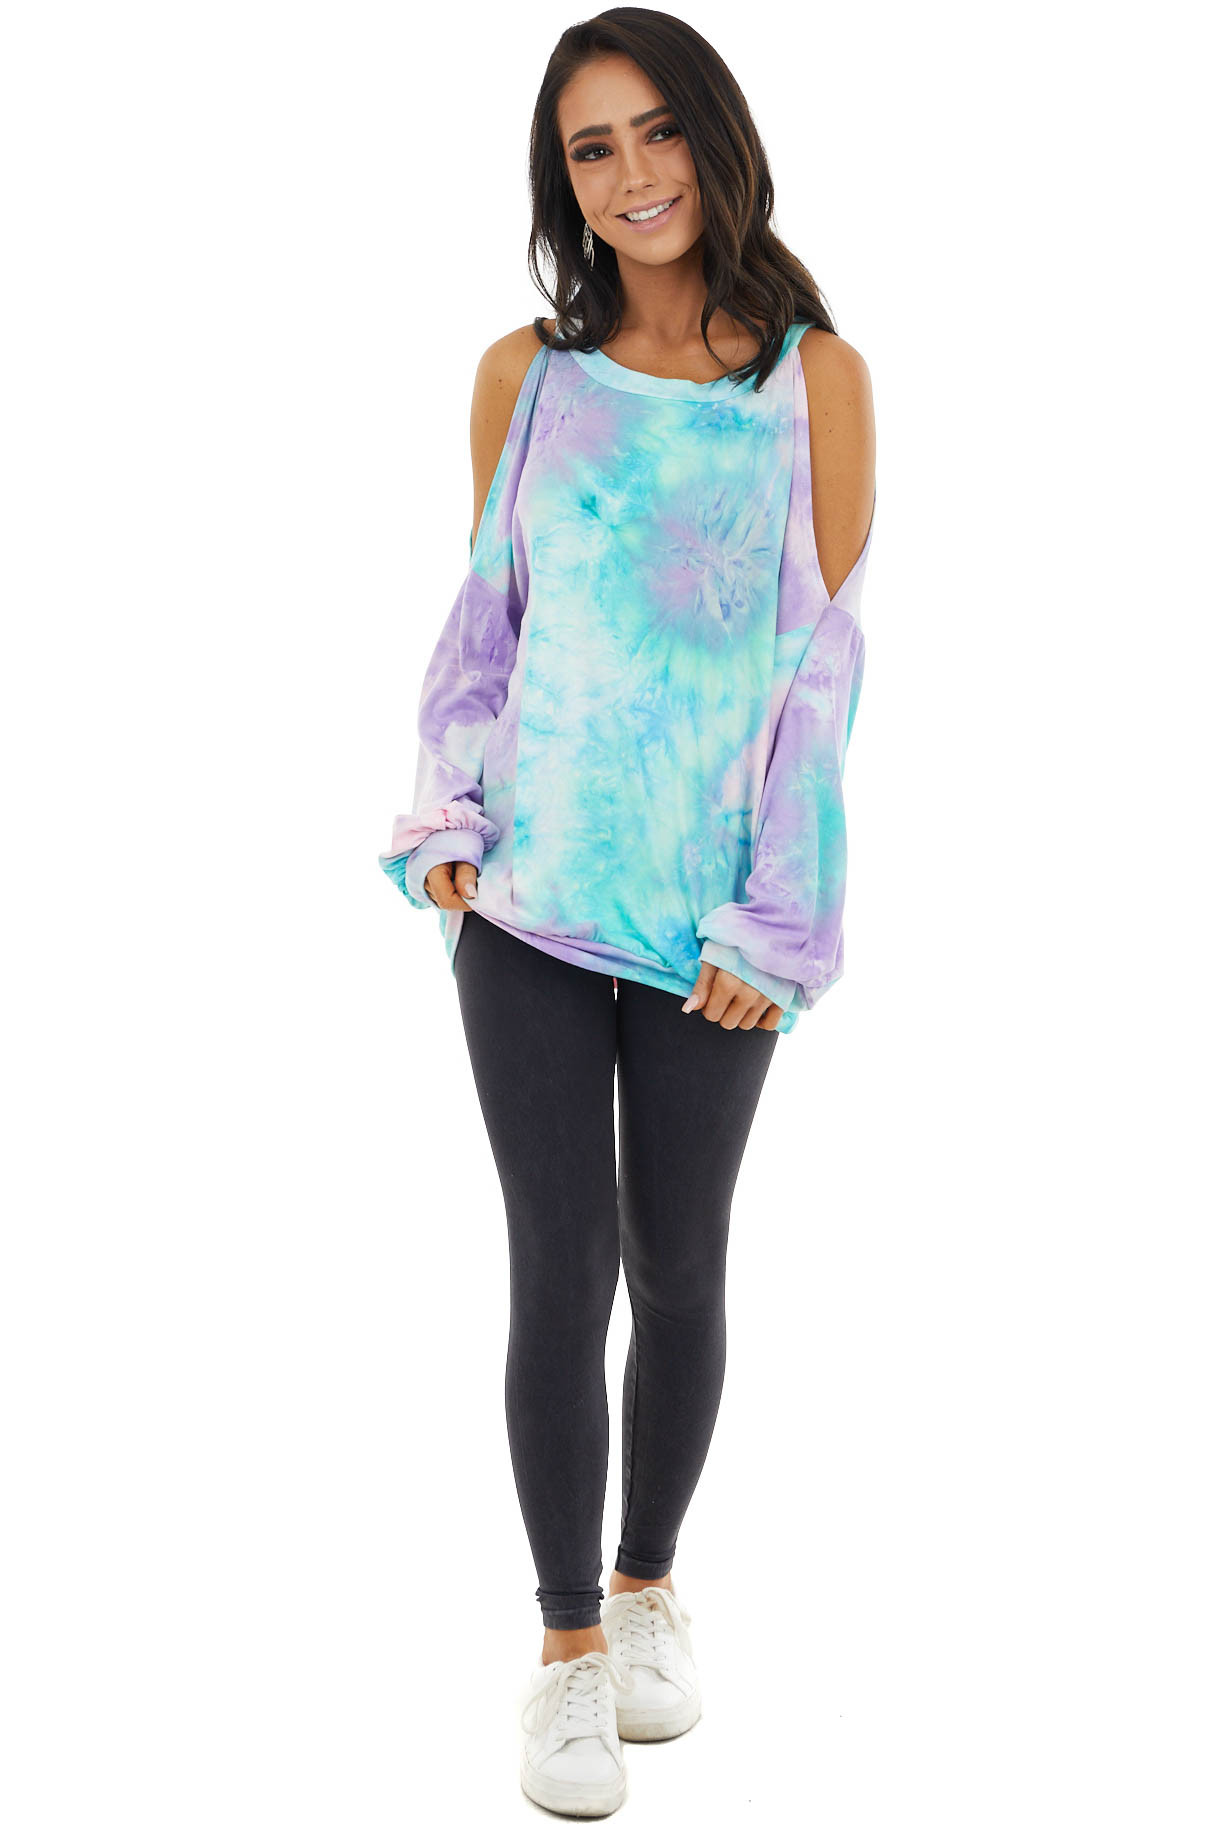 Multicolor Tie Dye Long Sleeve Top with Cold Shoulders